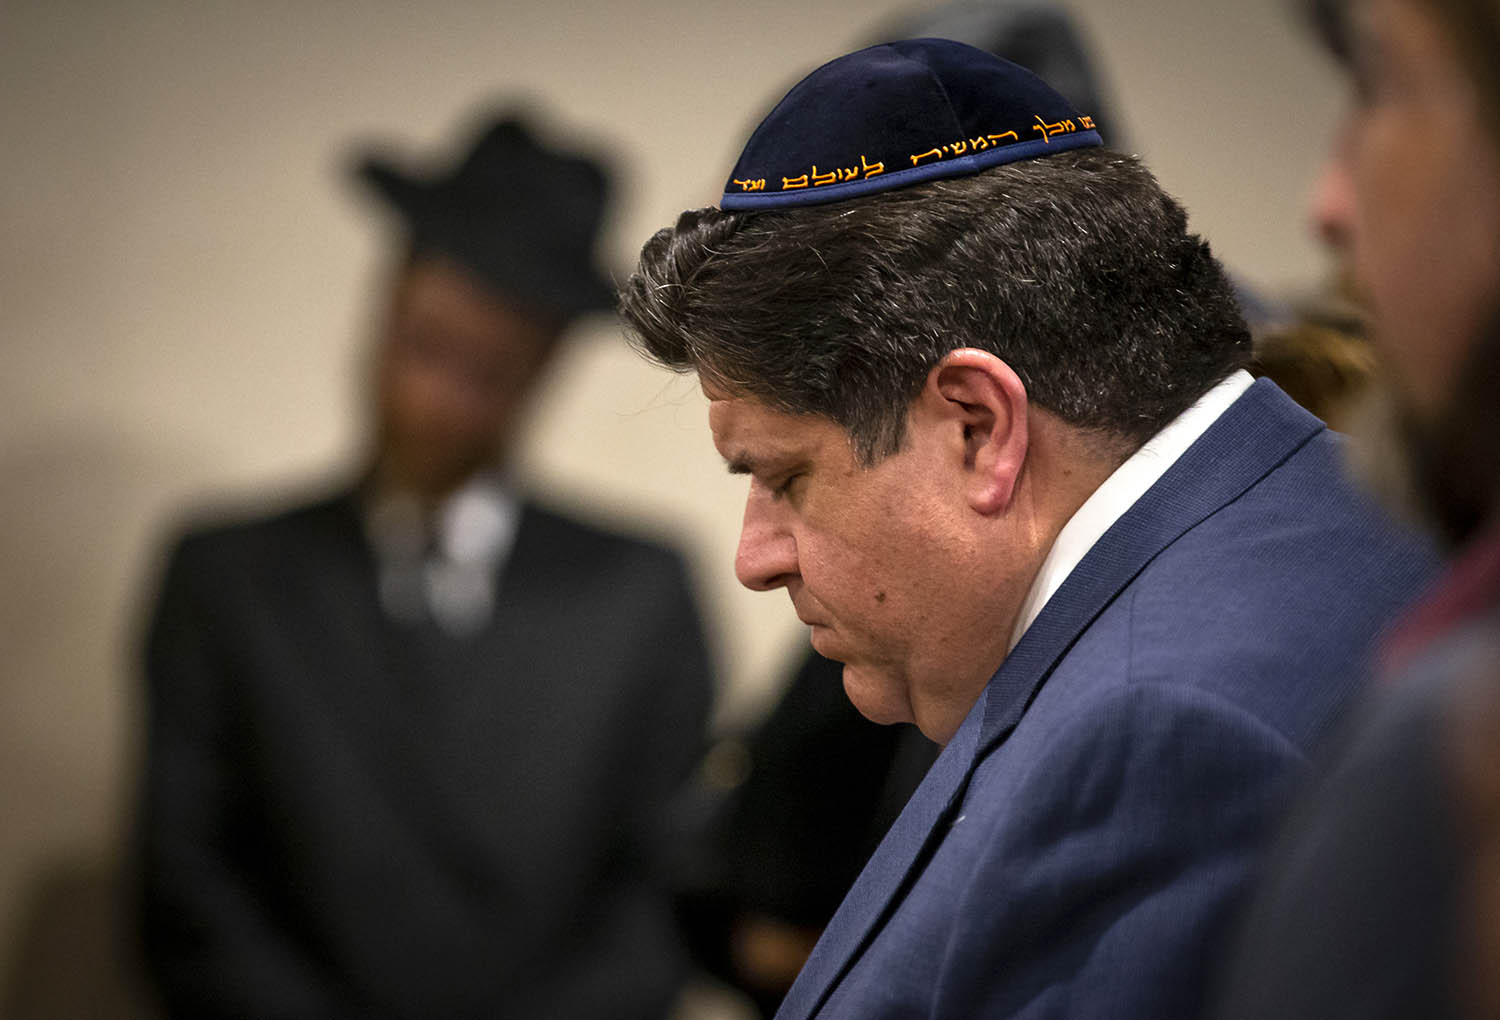 """Illinois Governor J.B. Pritzker bows his head during a song of prayer during the """"Unity, Solidarity & Prayer"""" program in response to the attack at the Chabad of Poway in California at the President Abraham Lincoln Hotel, Tuesday, April 30, 2019, in Springfield, Ill. [Justin L. Fowler/The State Journal-Register]"""